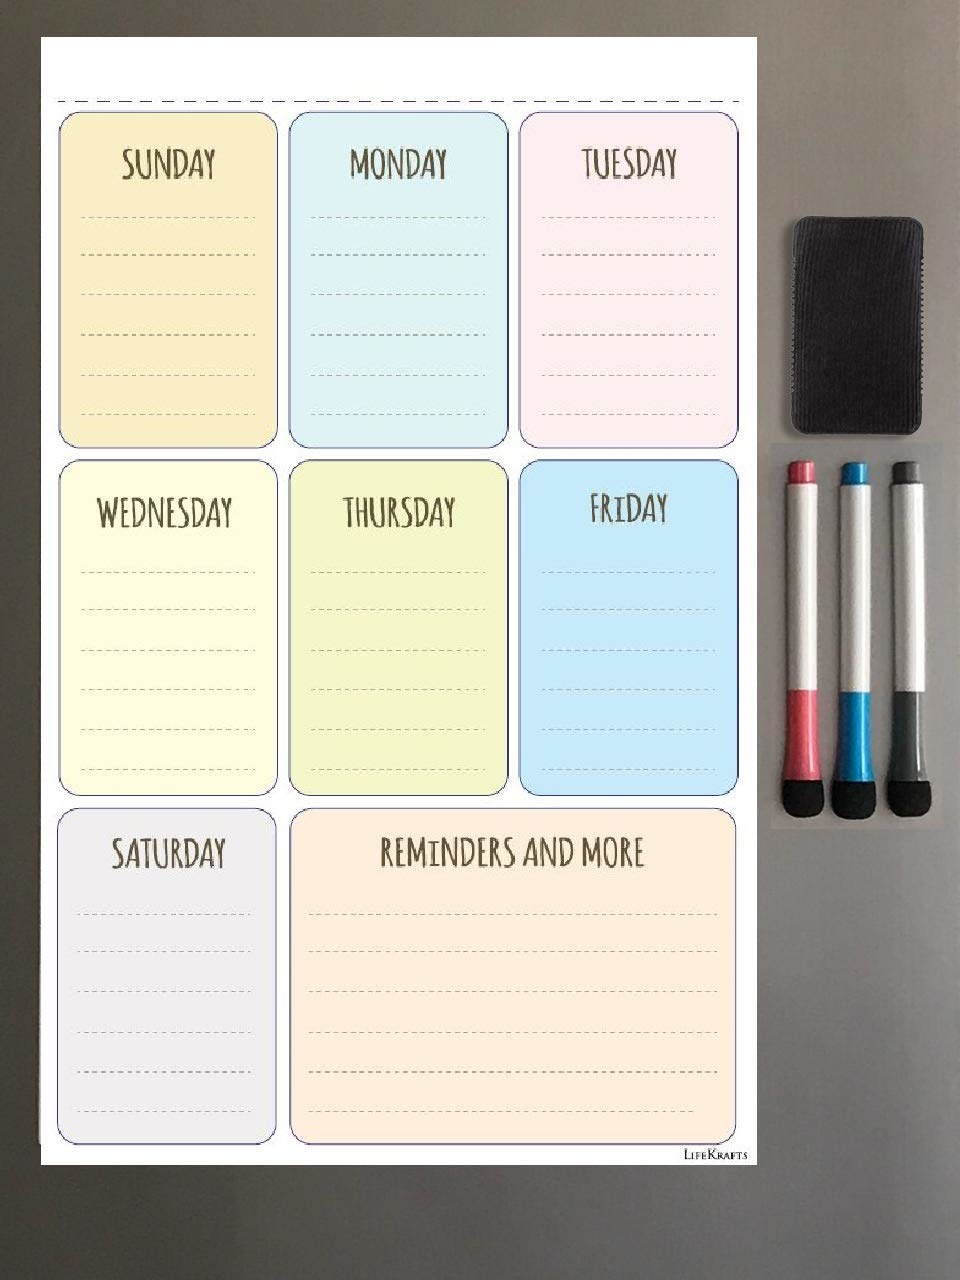 A meal planner with separate boxes for all days of the week and a reminders and notes box.